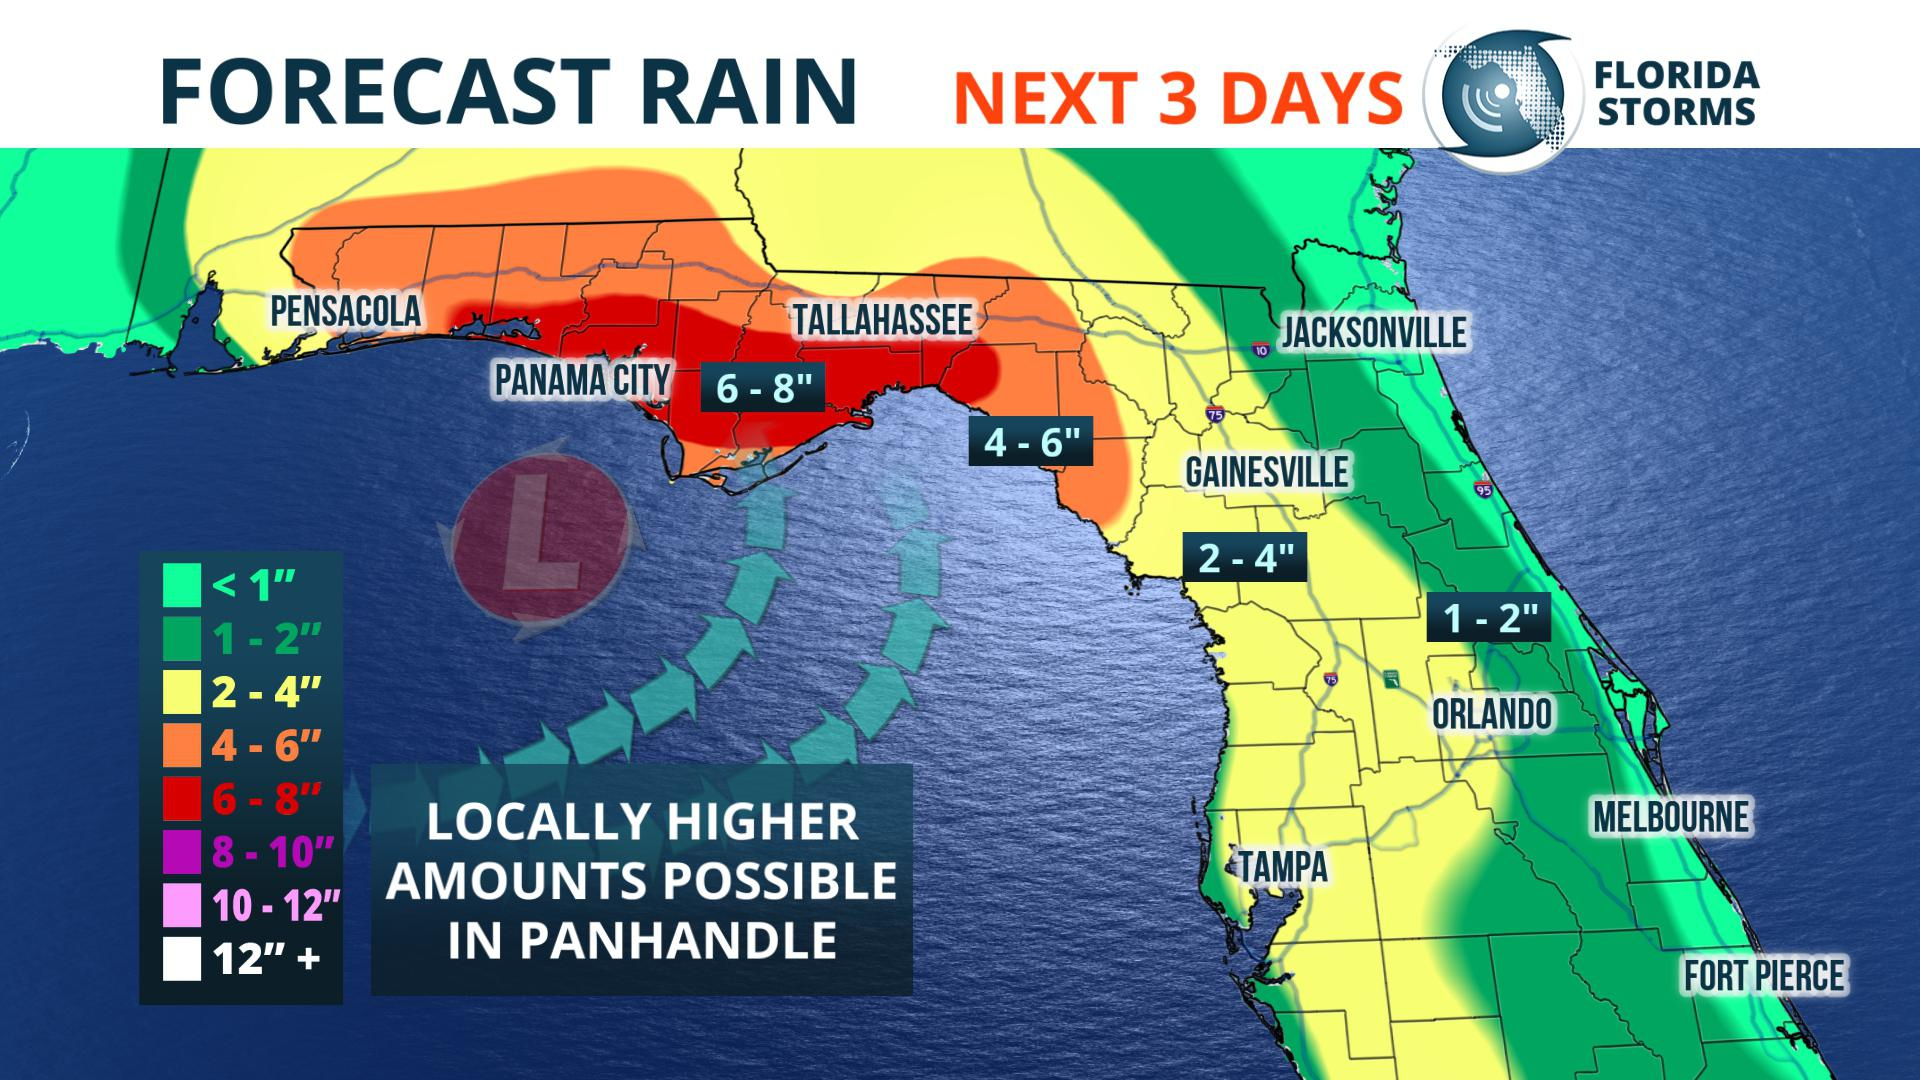 Heavy Rain, Possible Flooding This Weekend - Florida Storms - Flood Maps Gainesville Florida